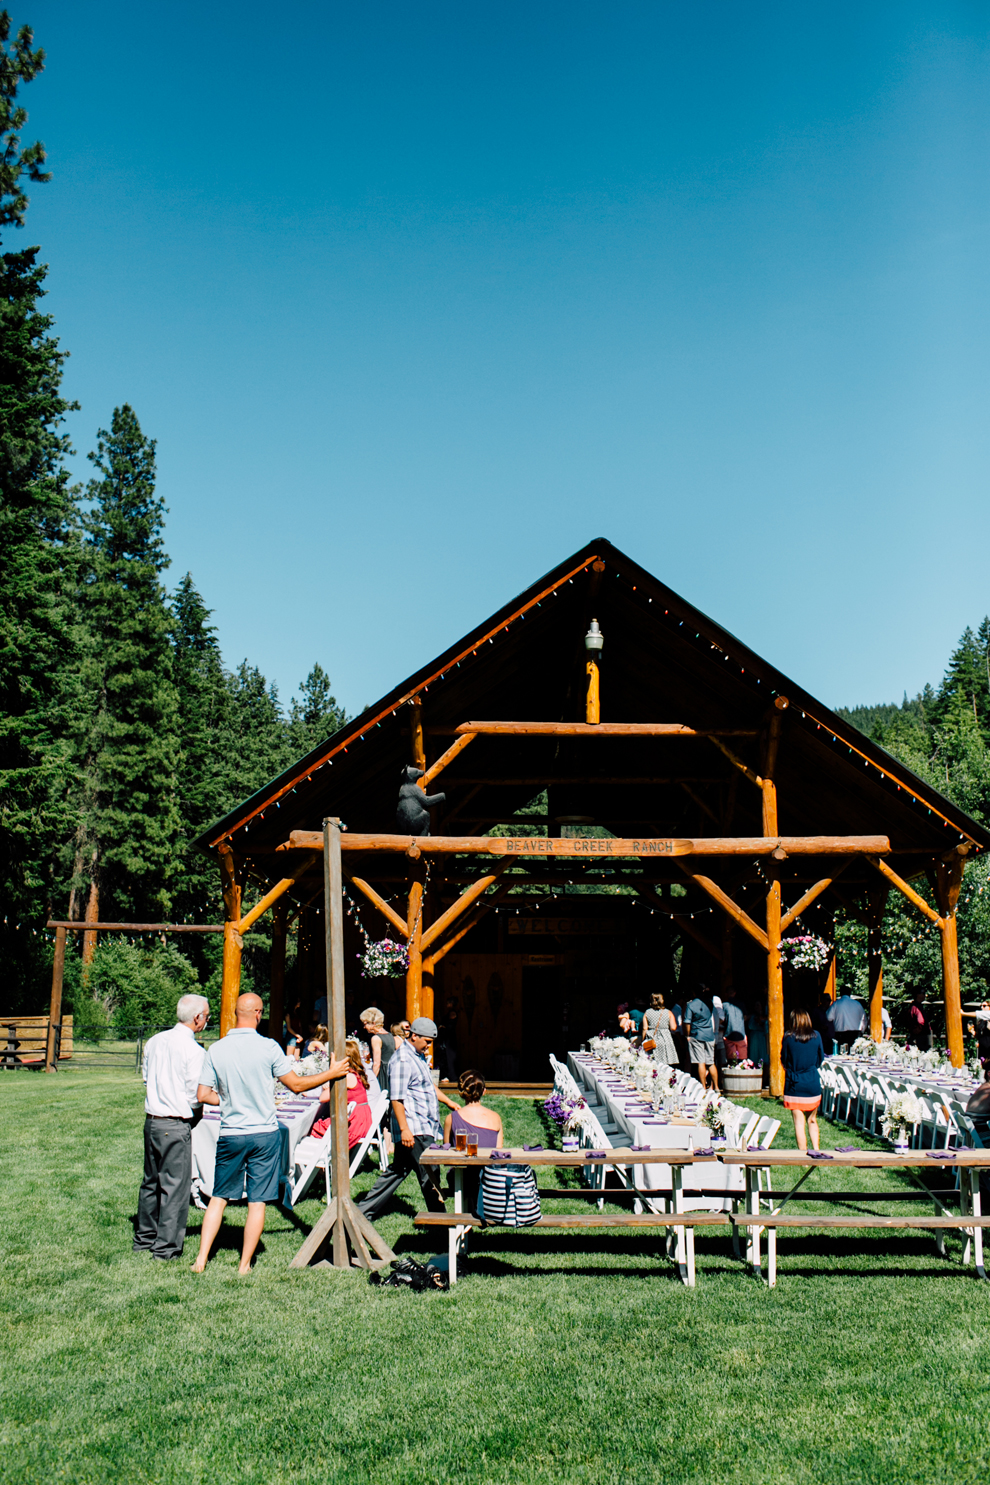 072-leavenworth-mountain-springs-lodge-wedding-karena-saul-katheryn-moran-photography.jpg